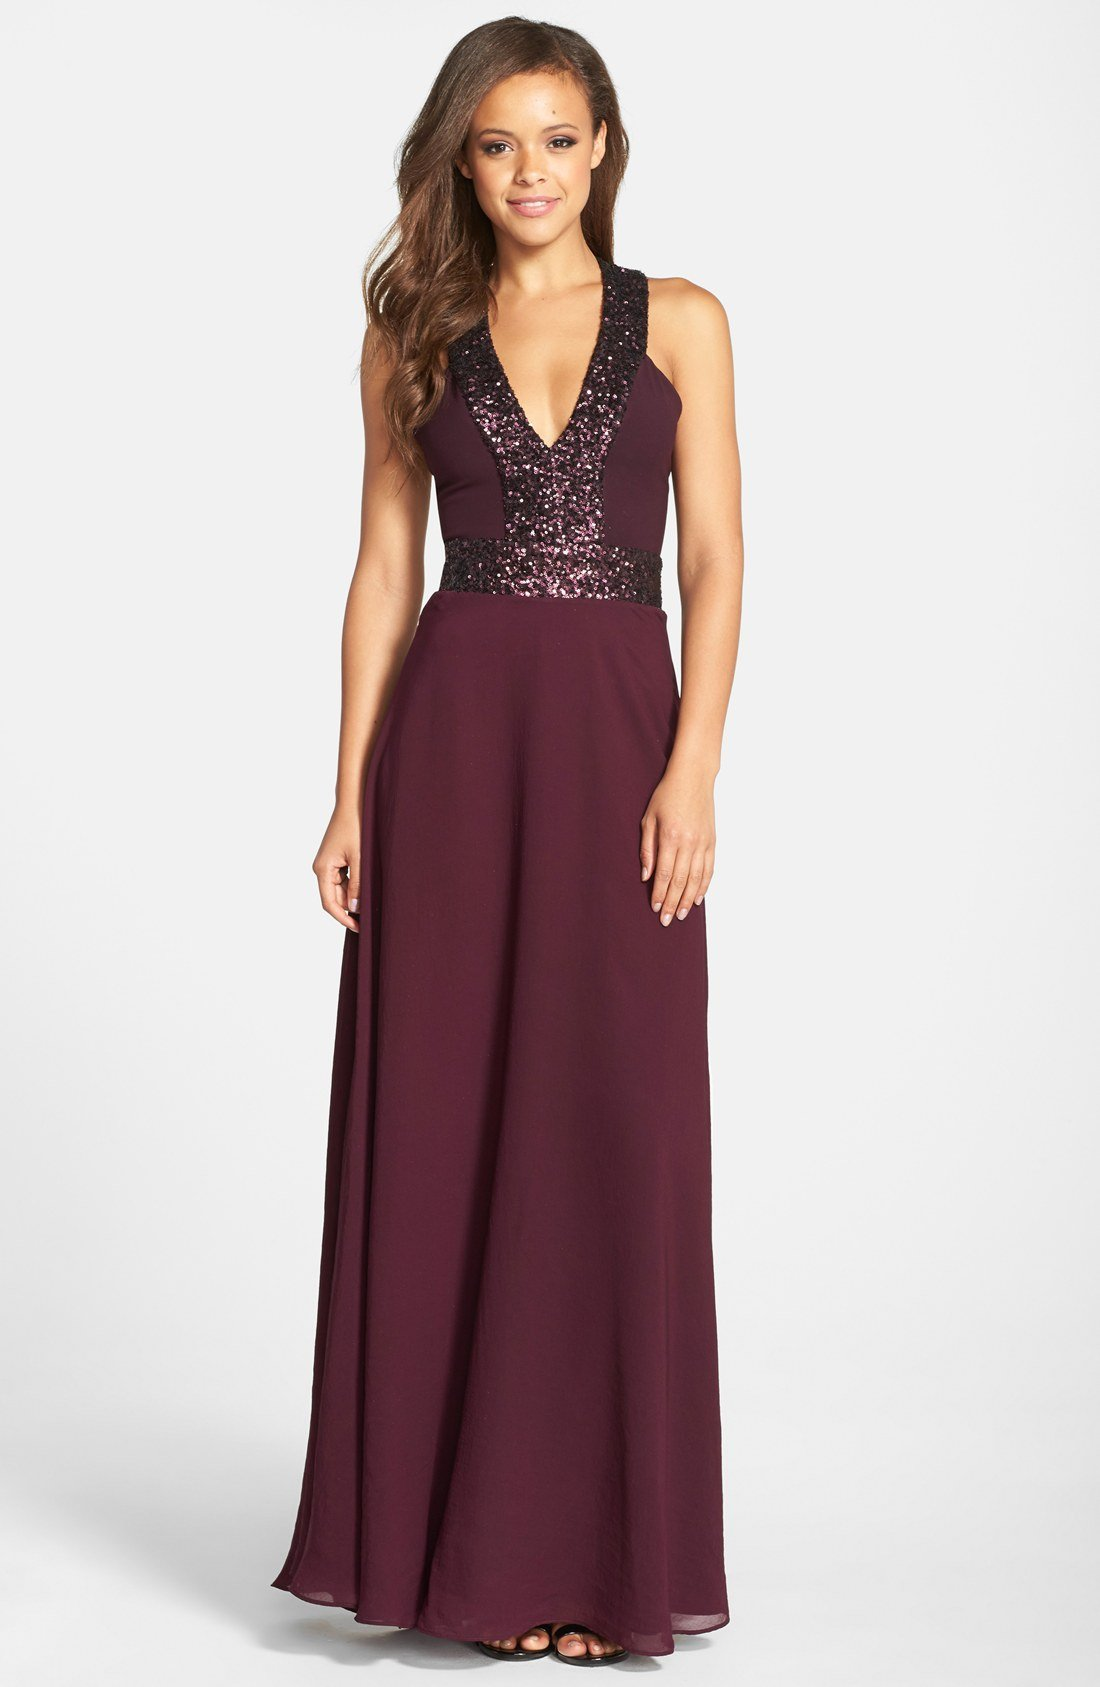 nordstrom womens evening dresses photo - 1